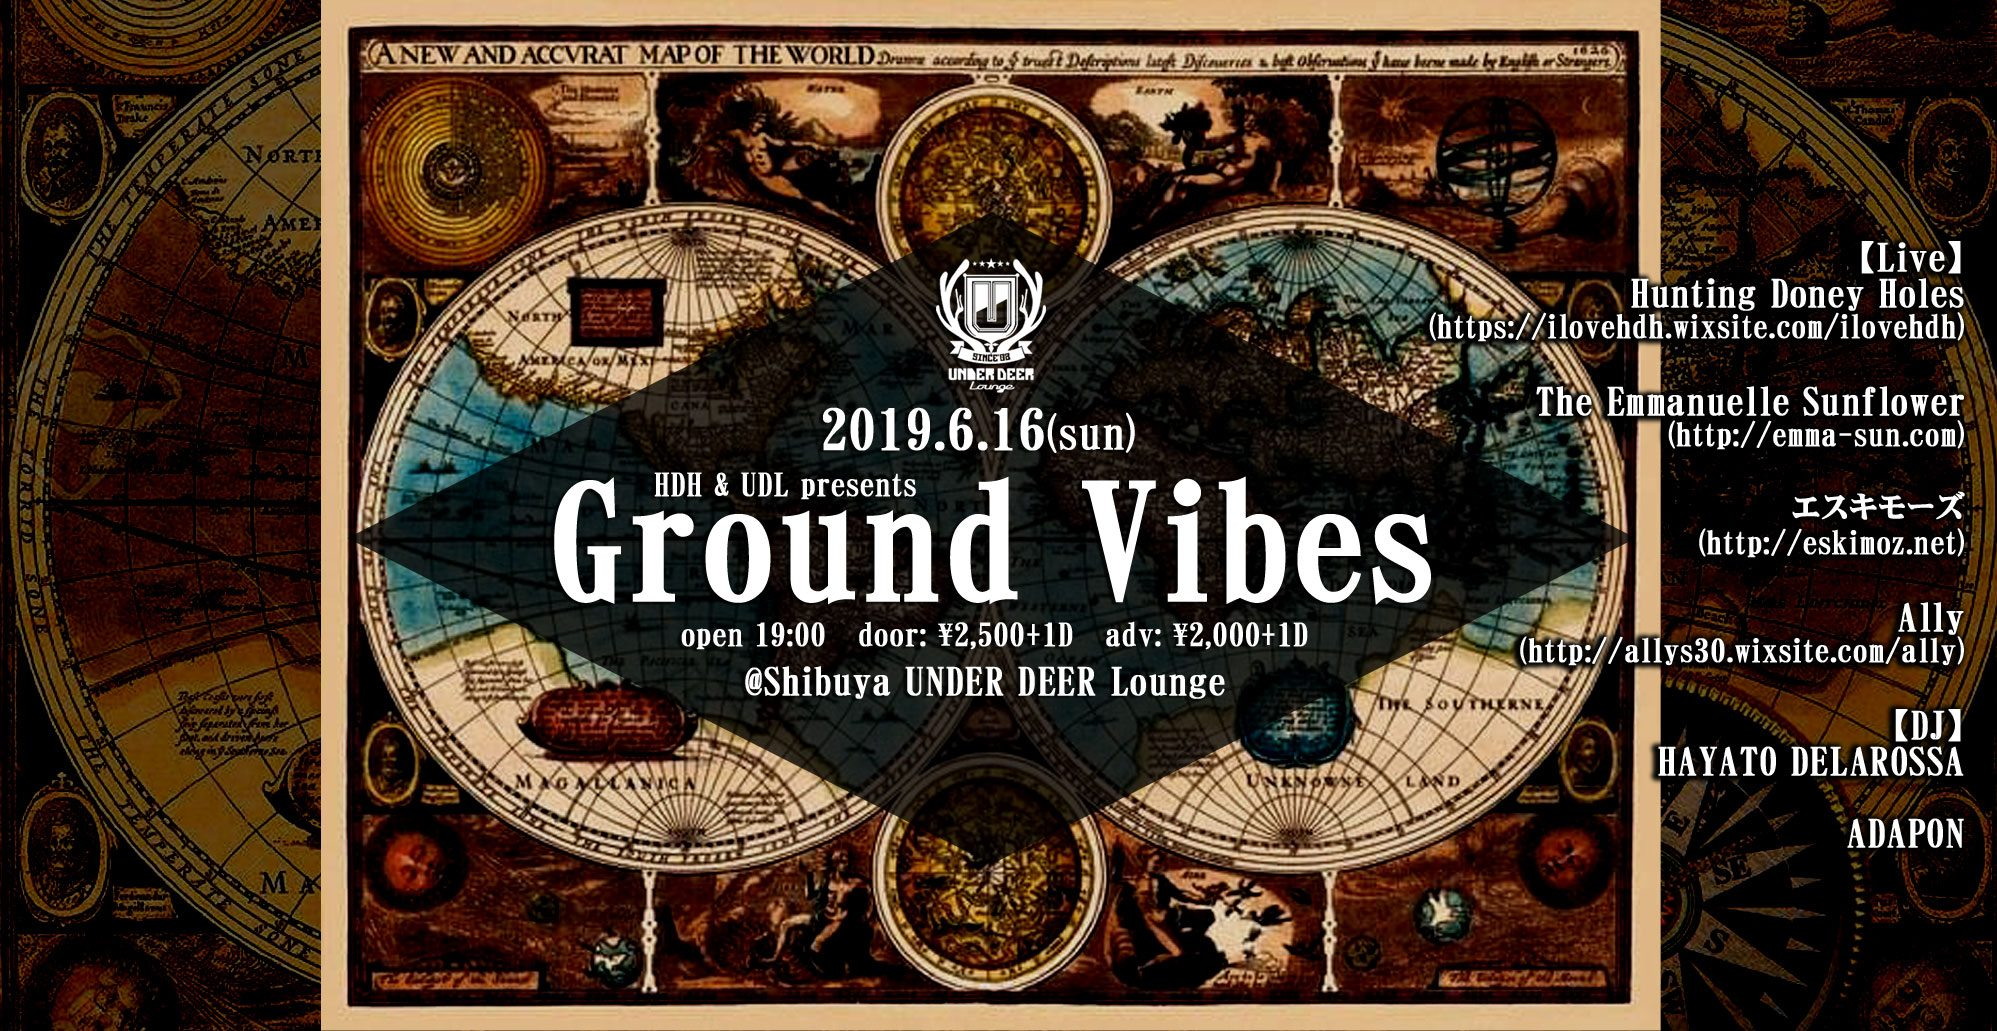 "2019.6.16(sun)HDH & UDL presents""Ground Vibes vol.5″@渋谷UNDER DEER Lounge"